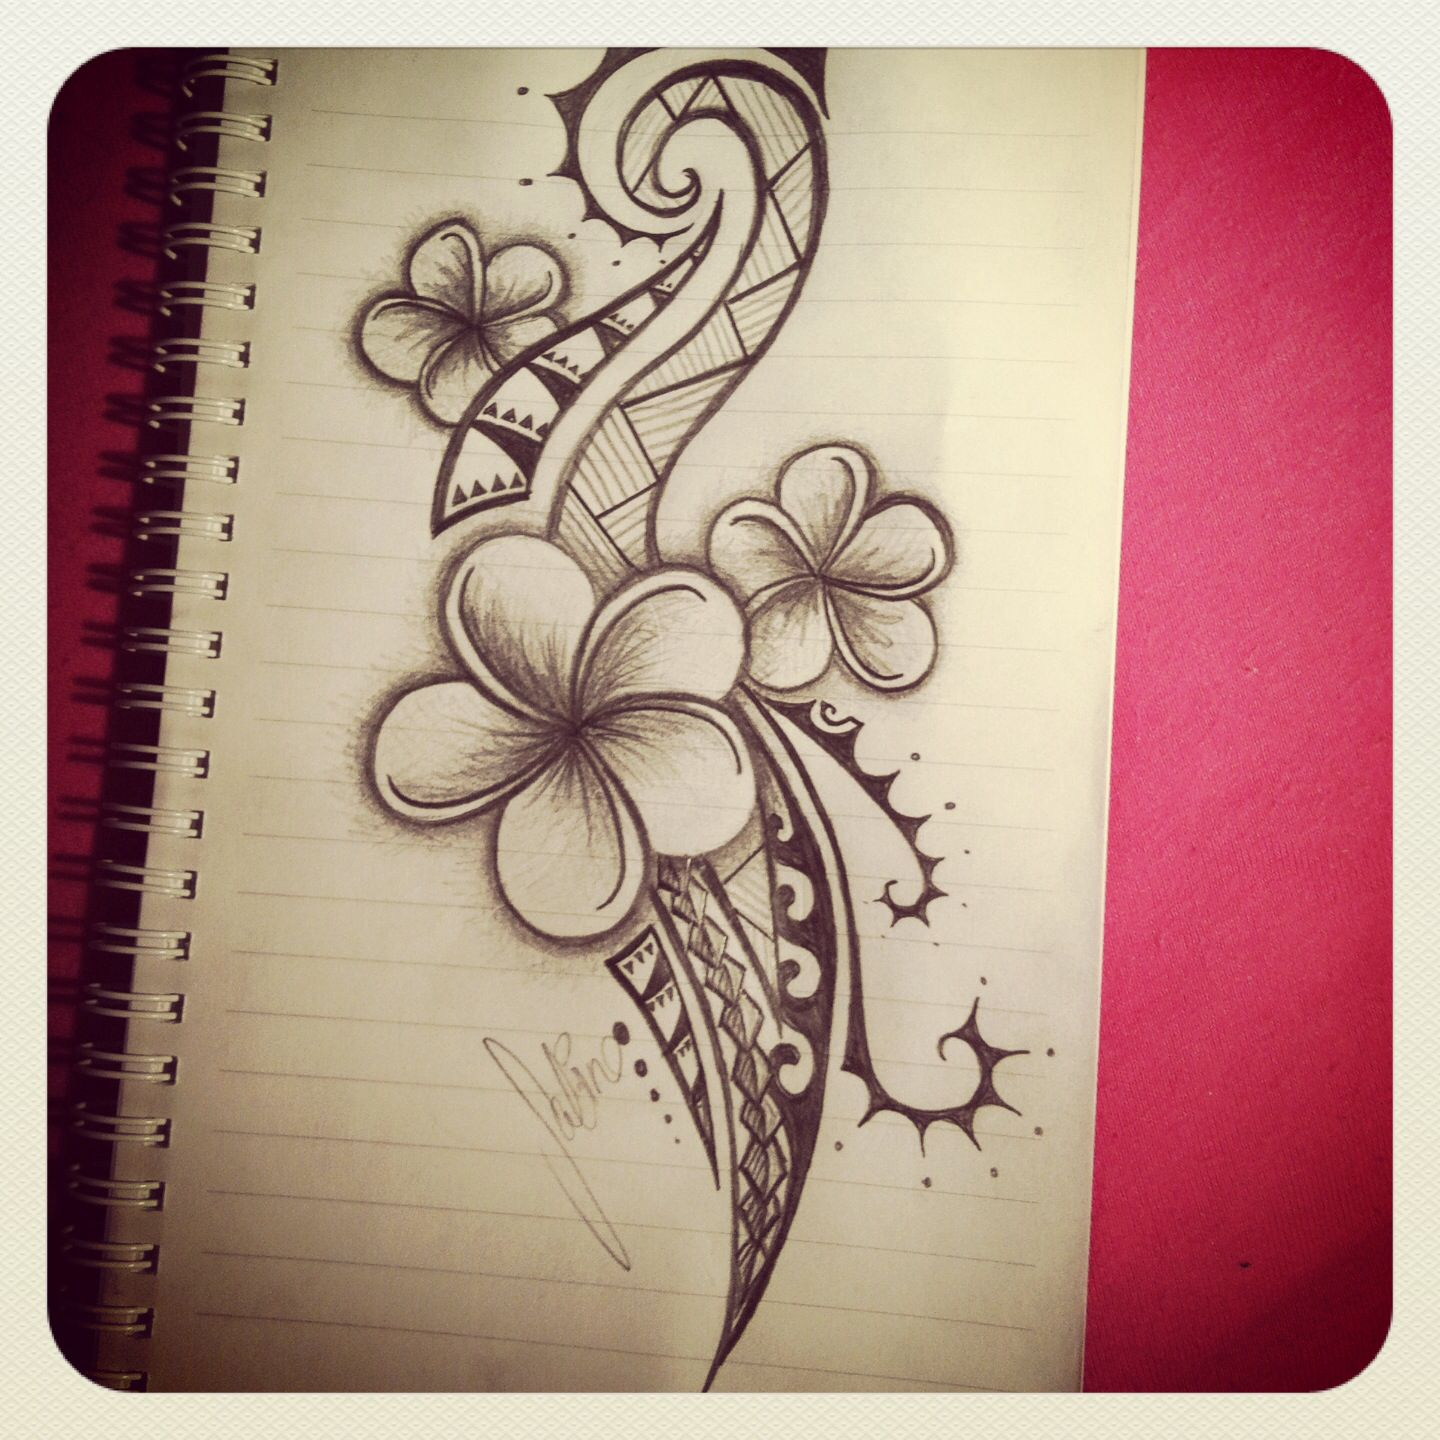 Polynesian Tattoo Would Look Cool In Brown With White Ink In The